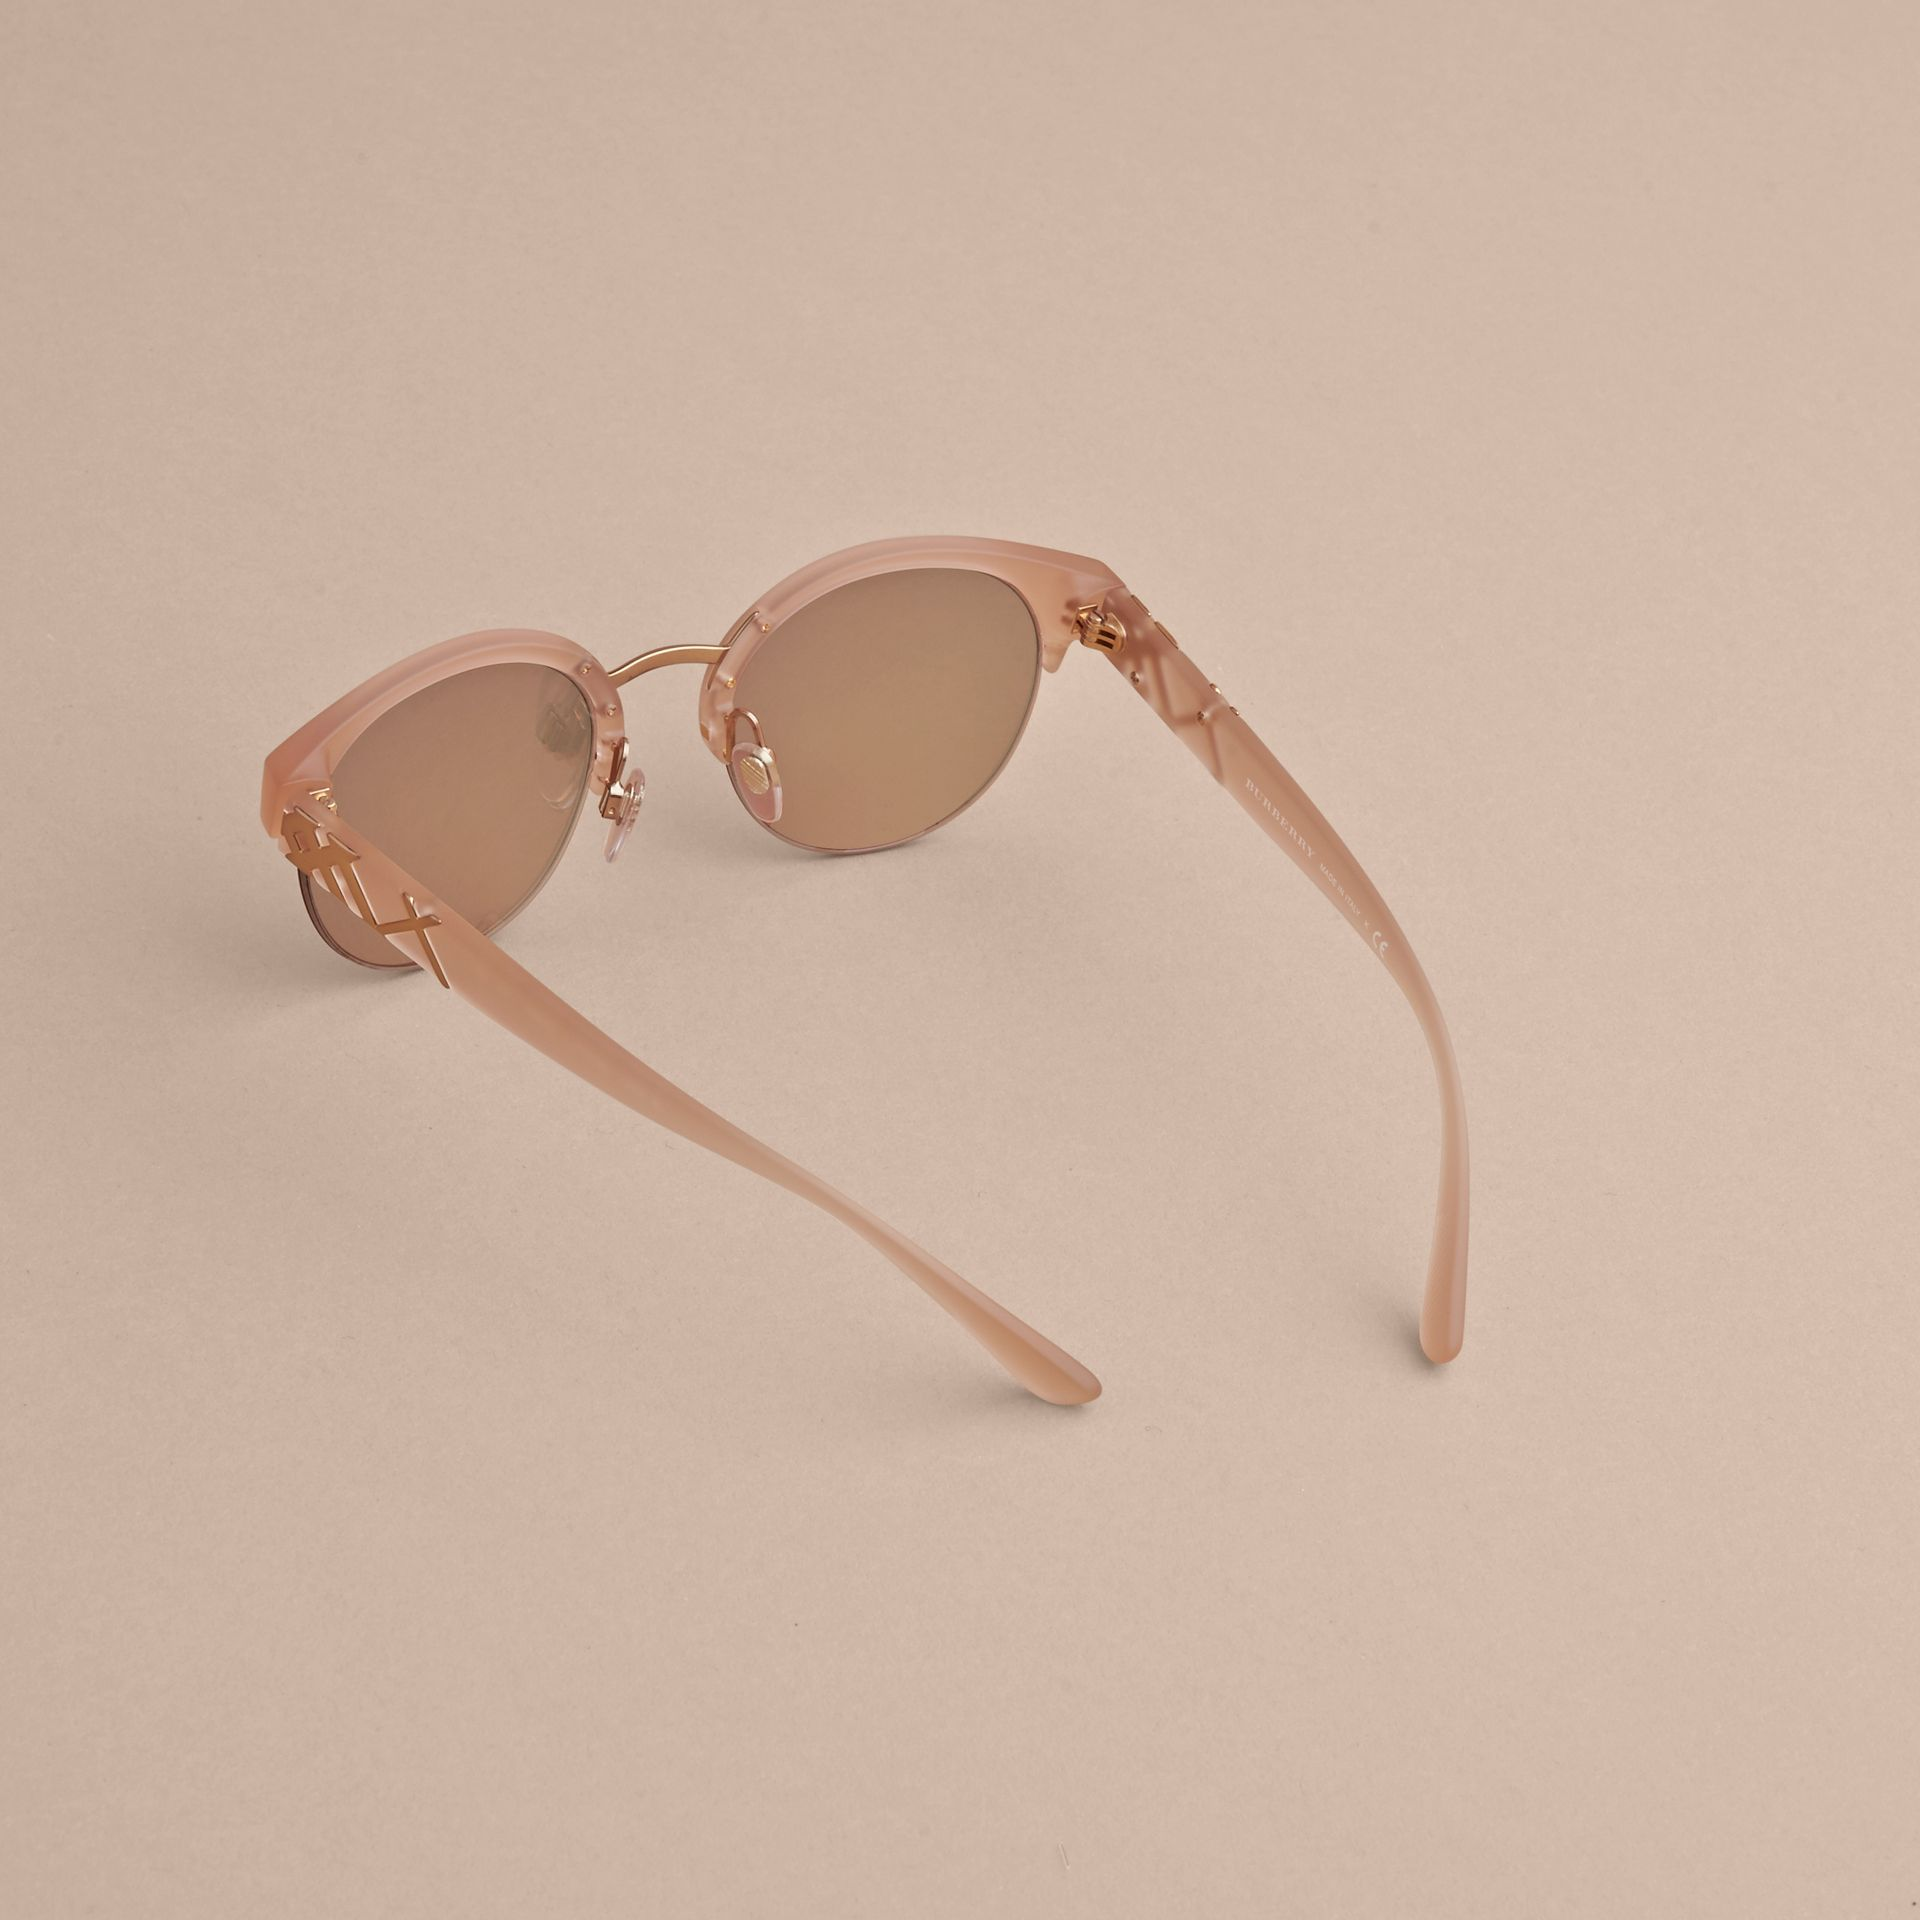 Check Detail Round Half-frame Sunglasses in Nude - Women | Burberry Singapore - gallery image 4